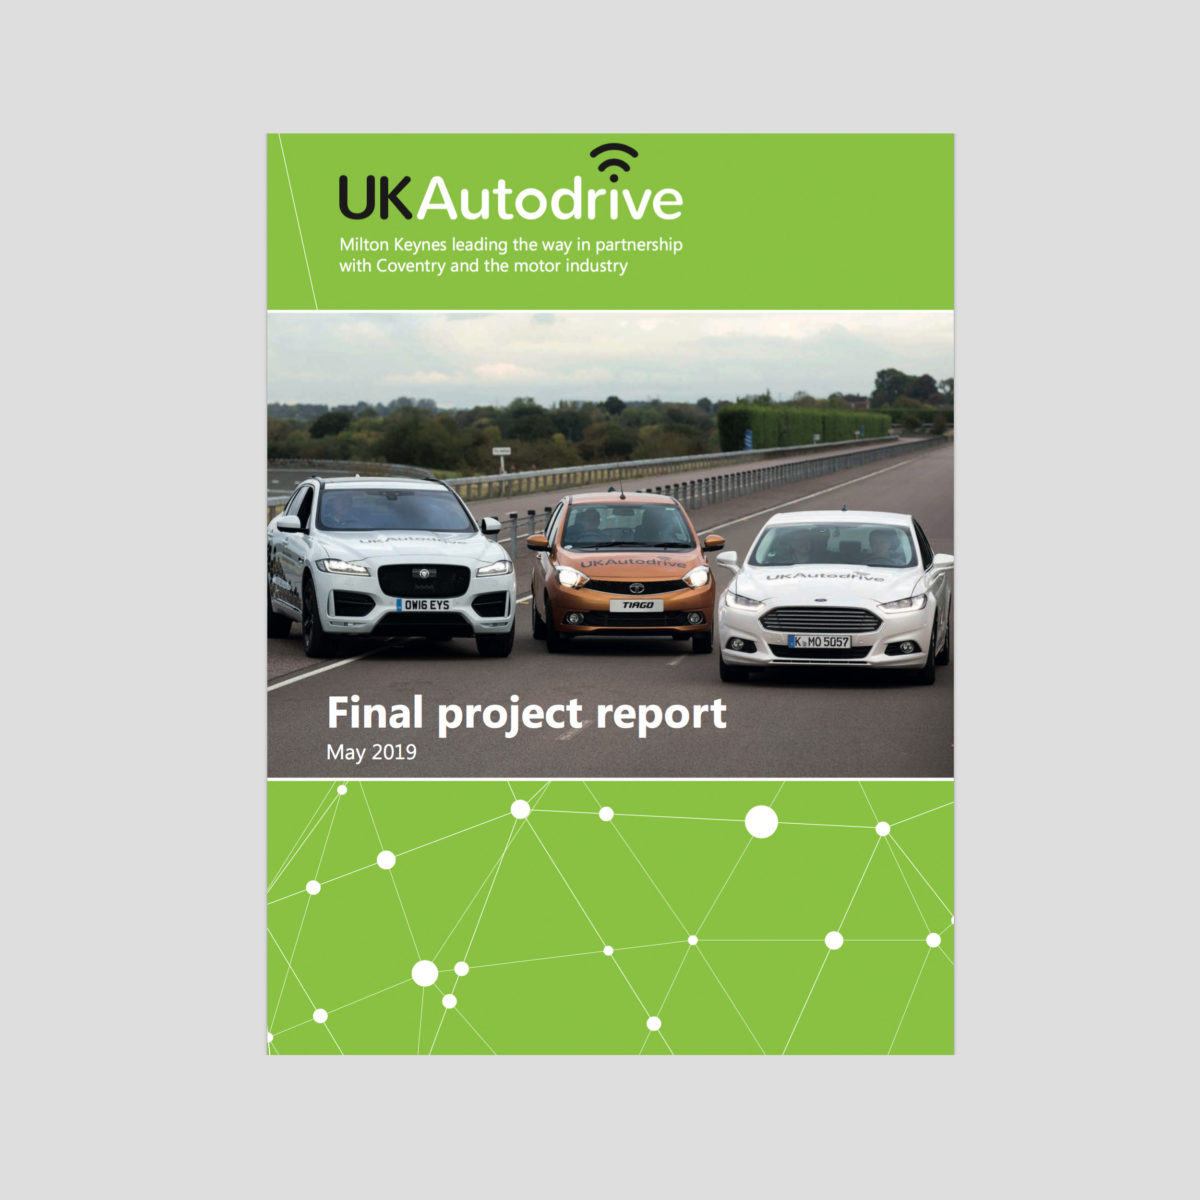 UK Autodrive report highlights driverless progress and challenges